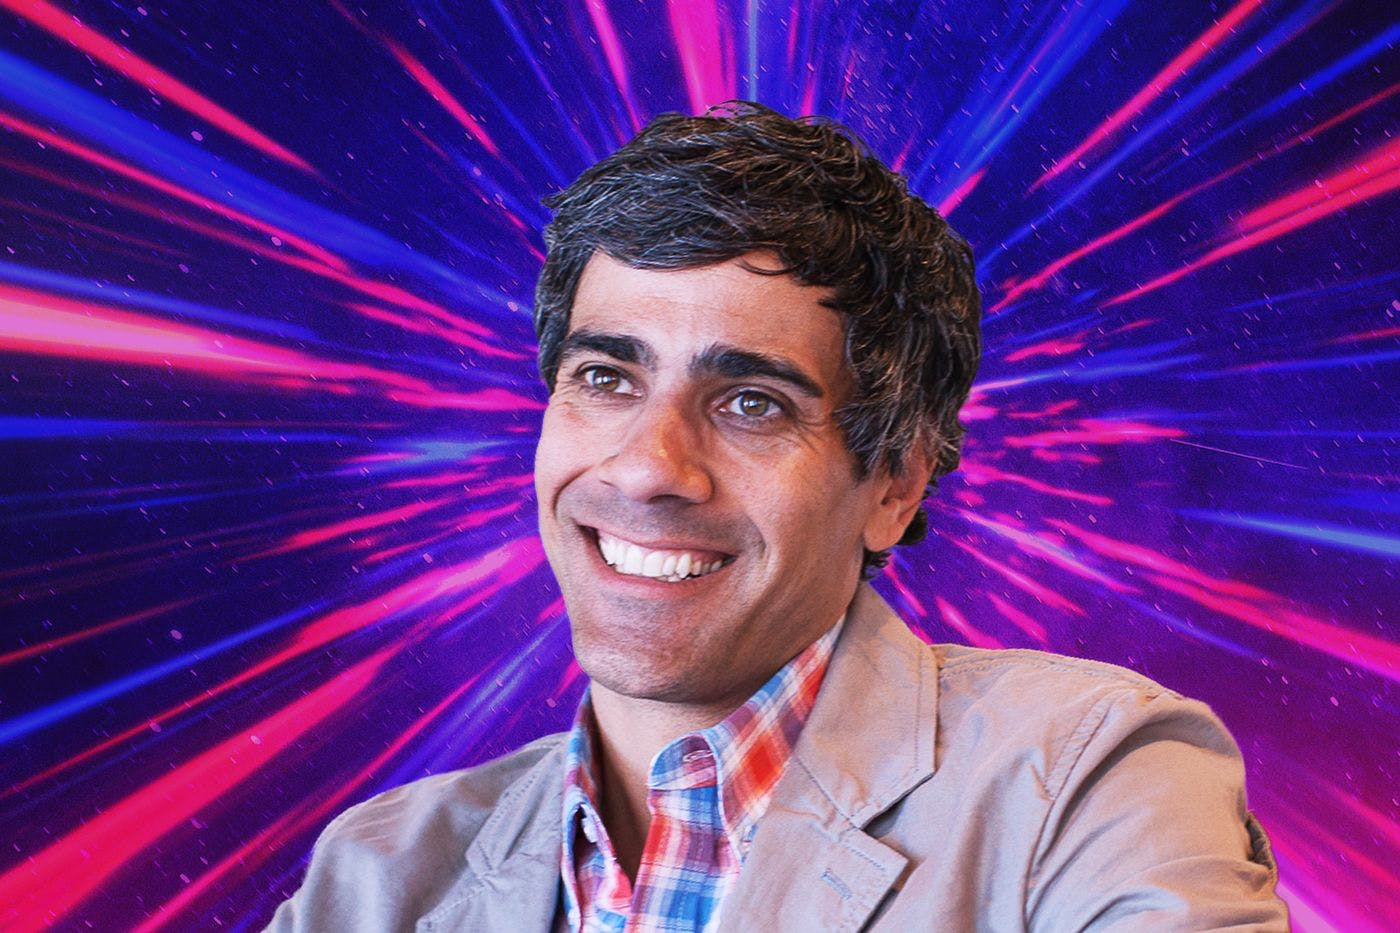 JEREMY STOPPELMAN: THE CO-FOUNDER AND CEO OF YELP